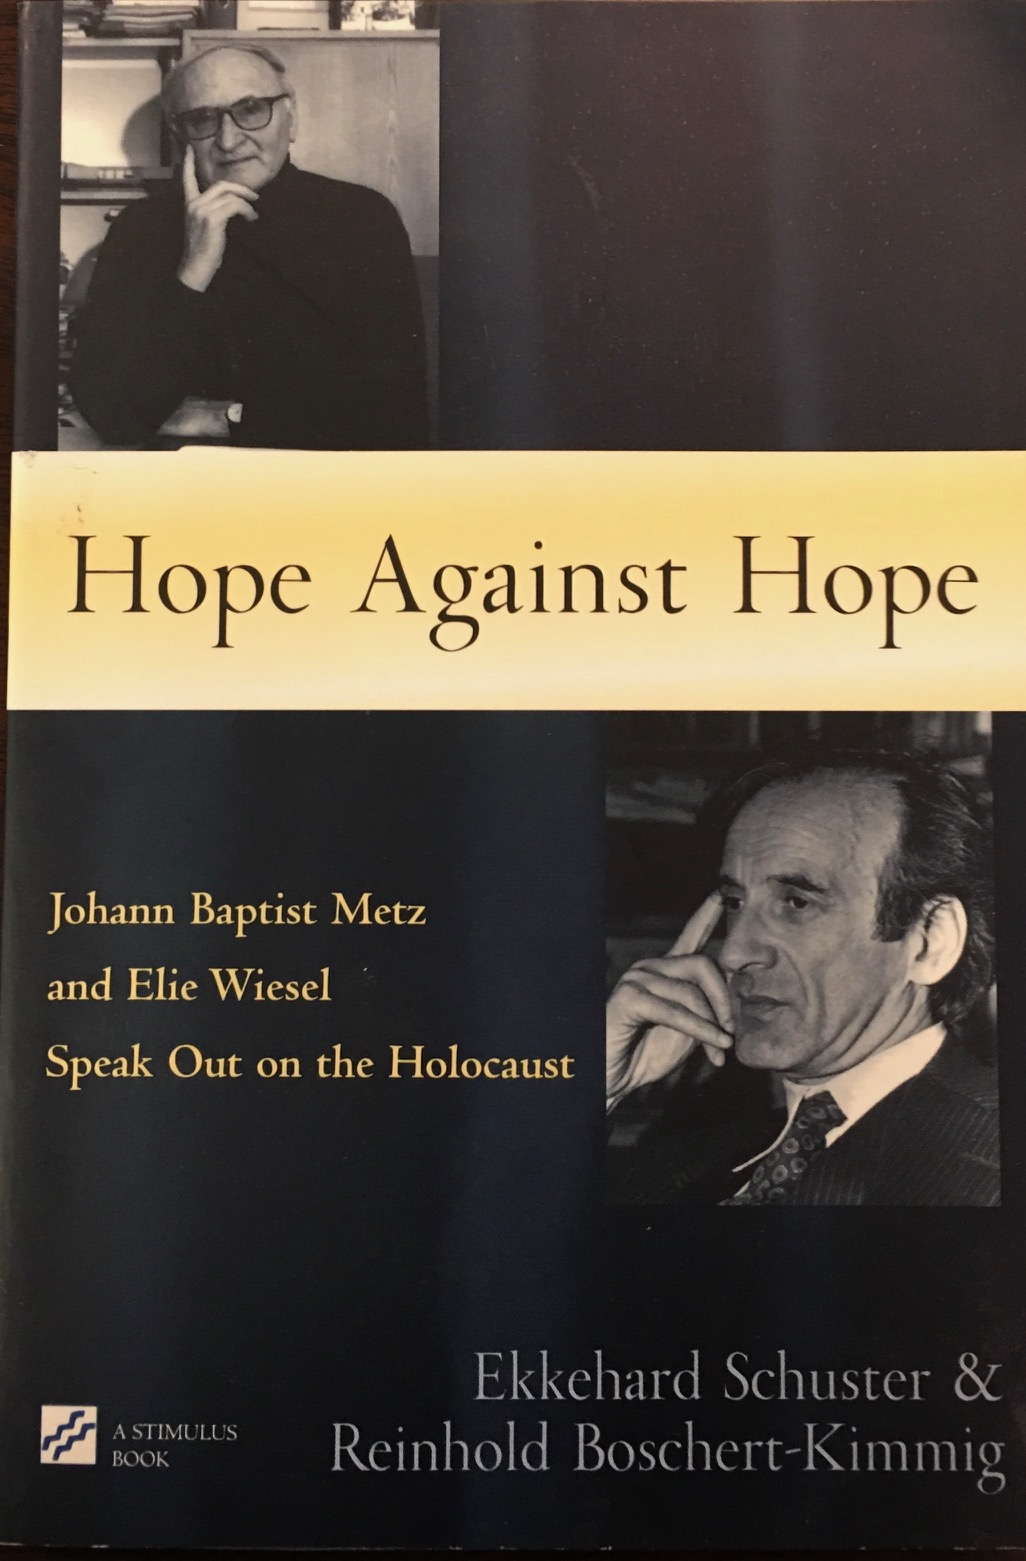 Image for Hope against Hope: Johann Baptist Metz and Elie Wiesel Speak Out on the Holocaust (Stimulus Books)